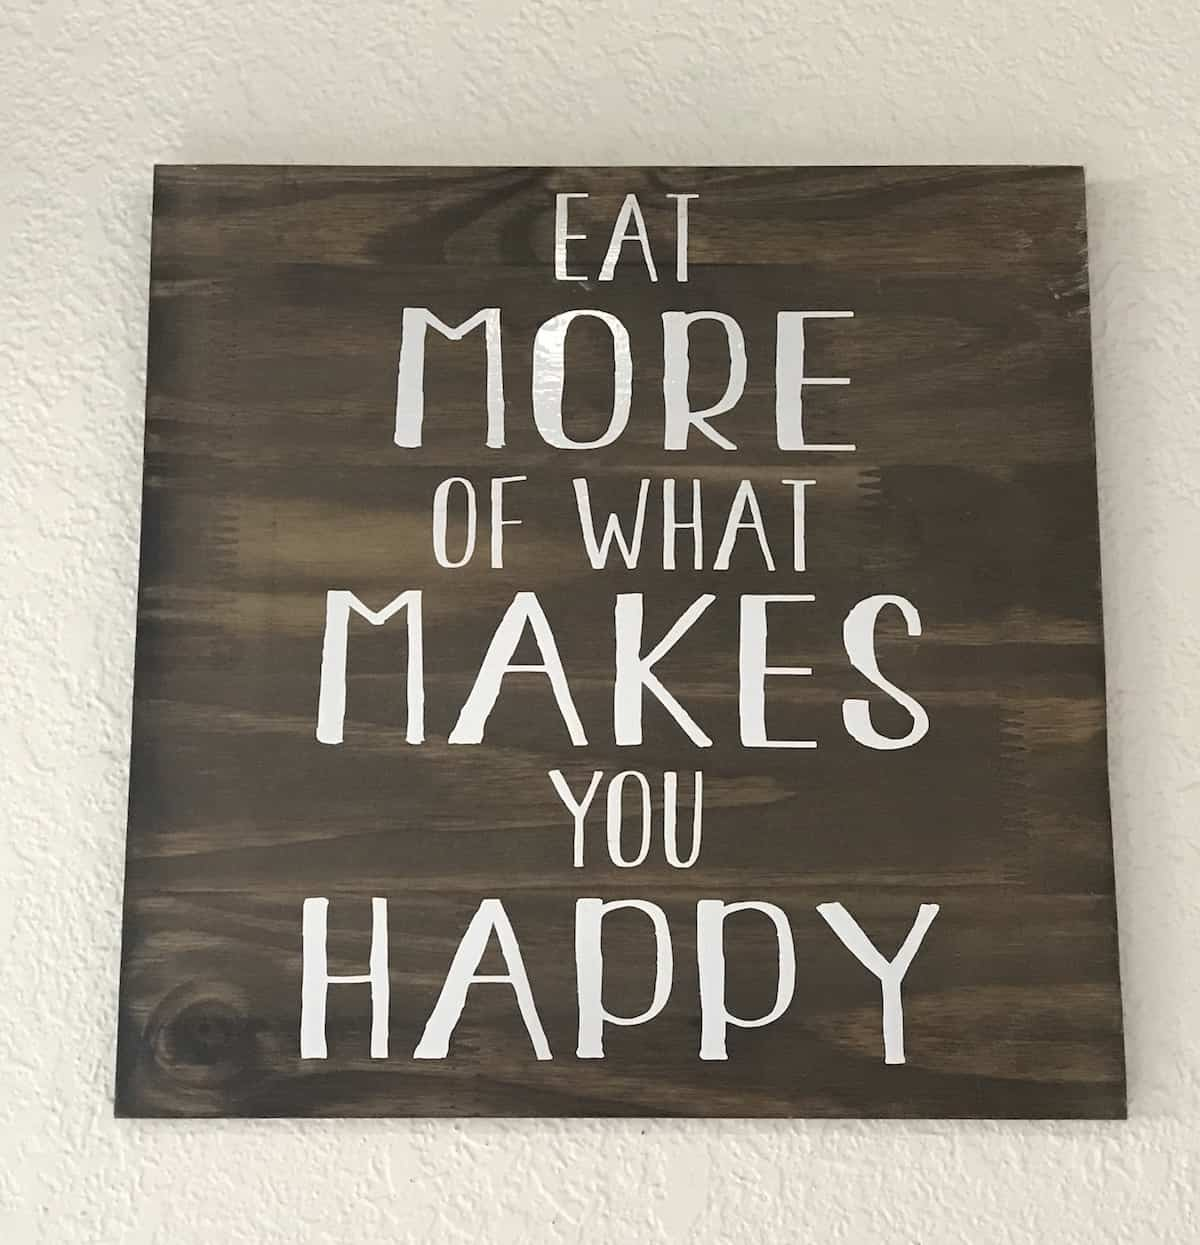 Sign on wall in The Yard restaurant, Eat More of What Makes You Happy